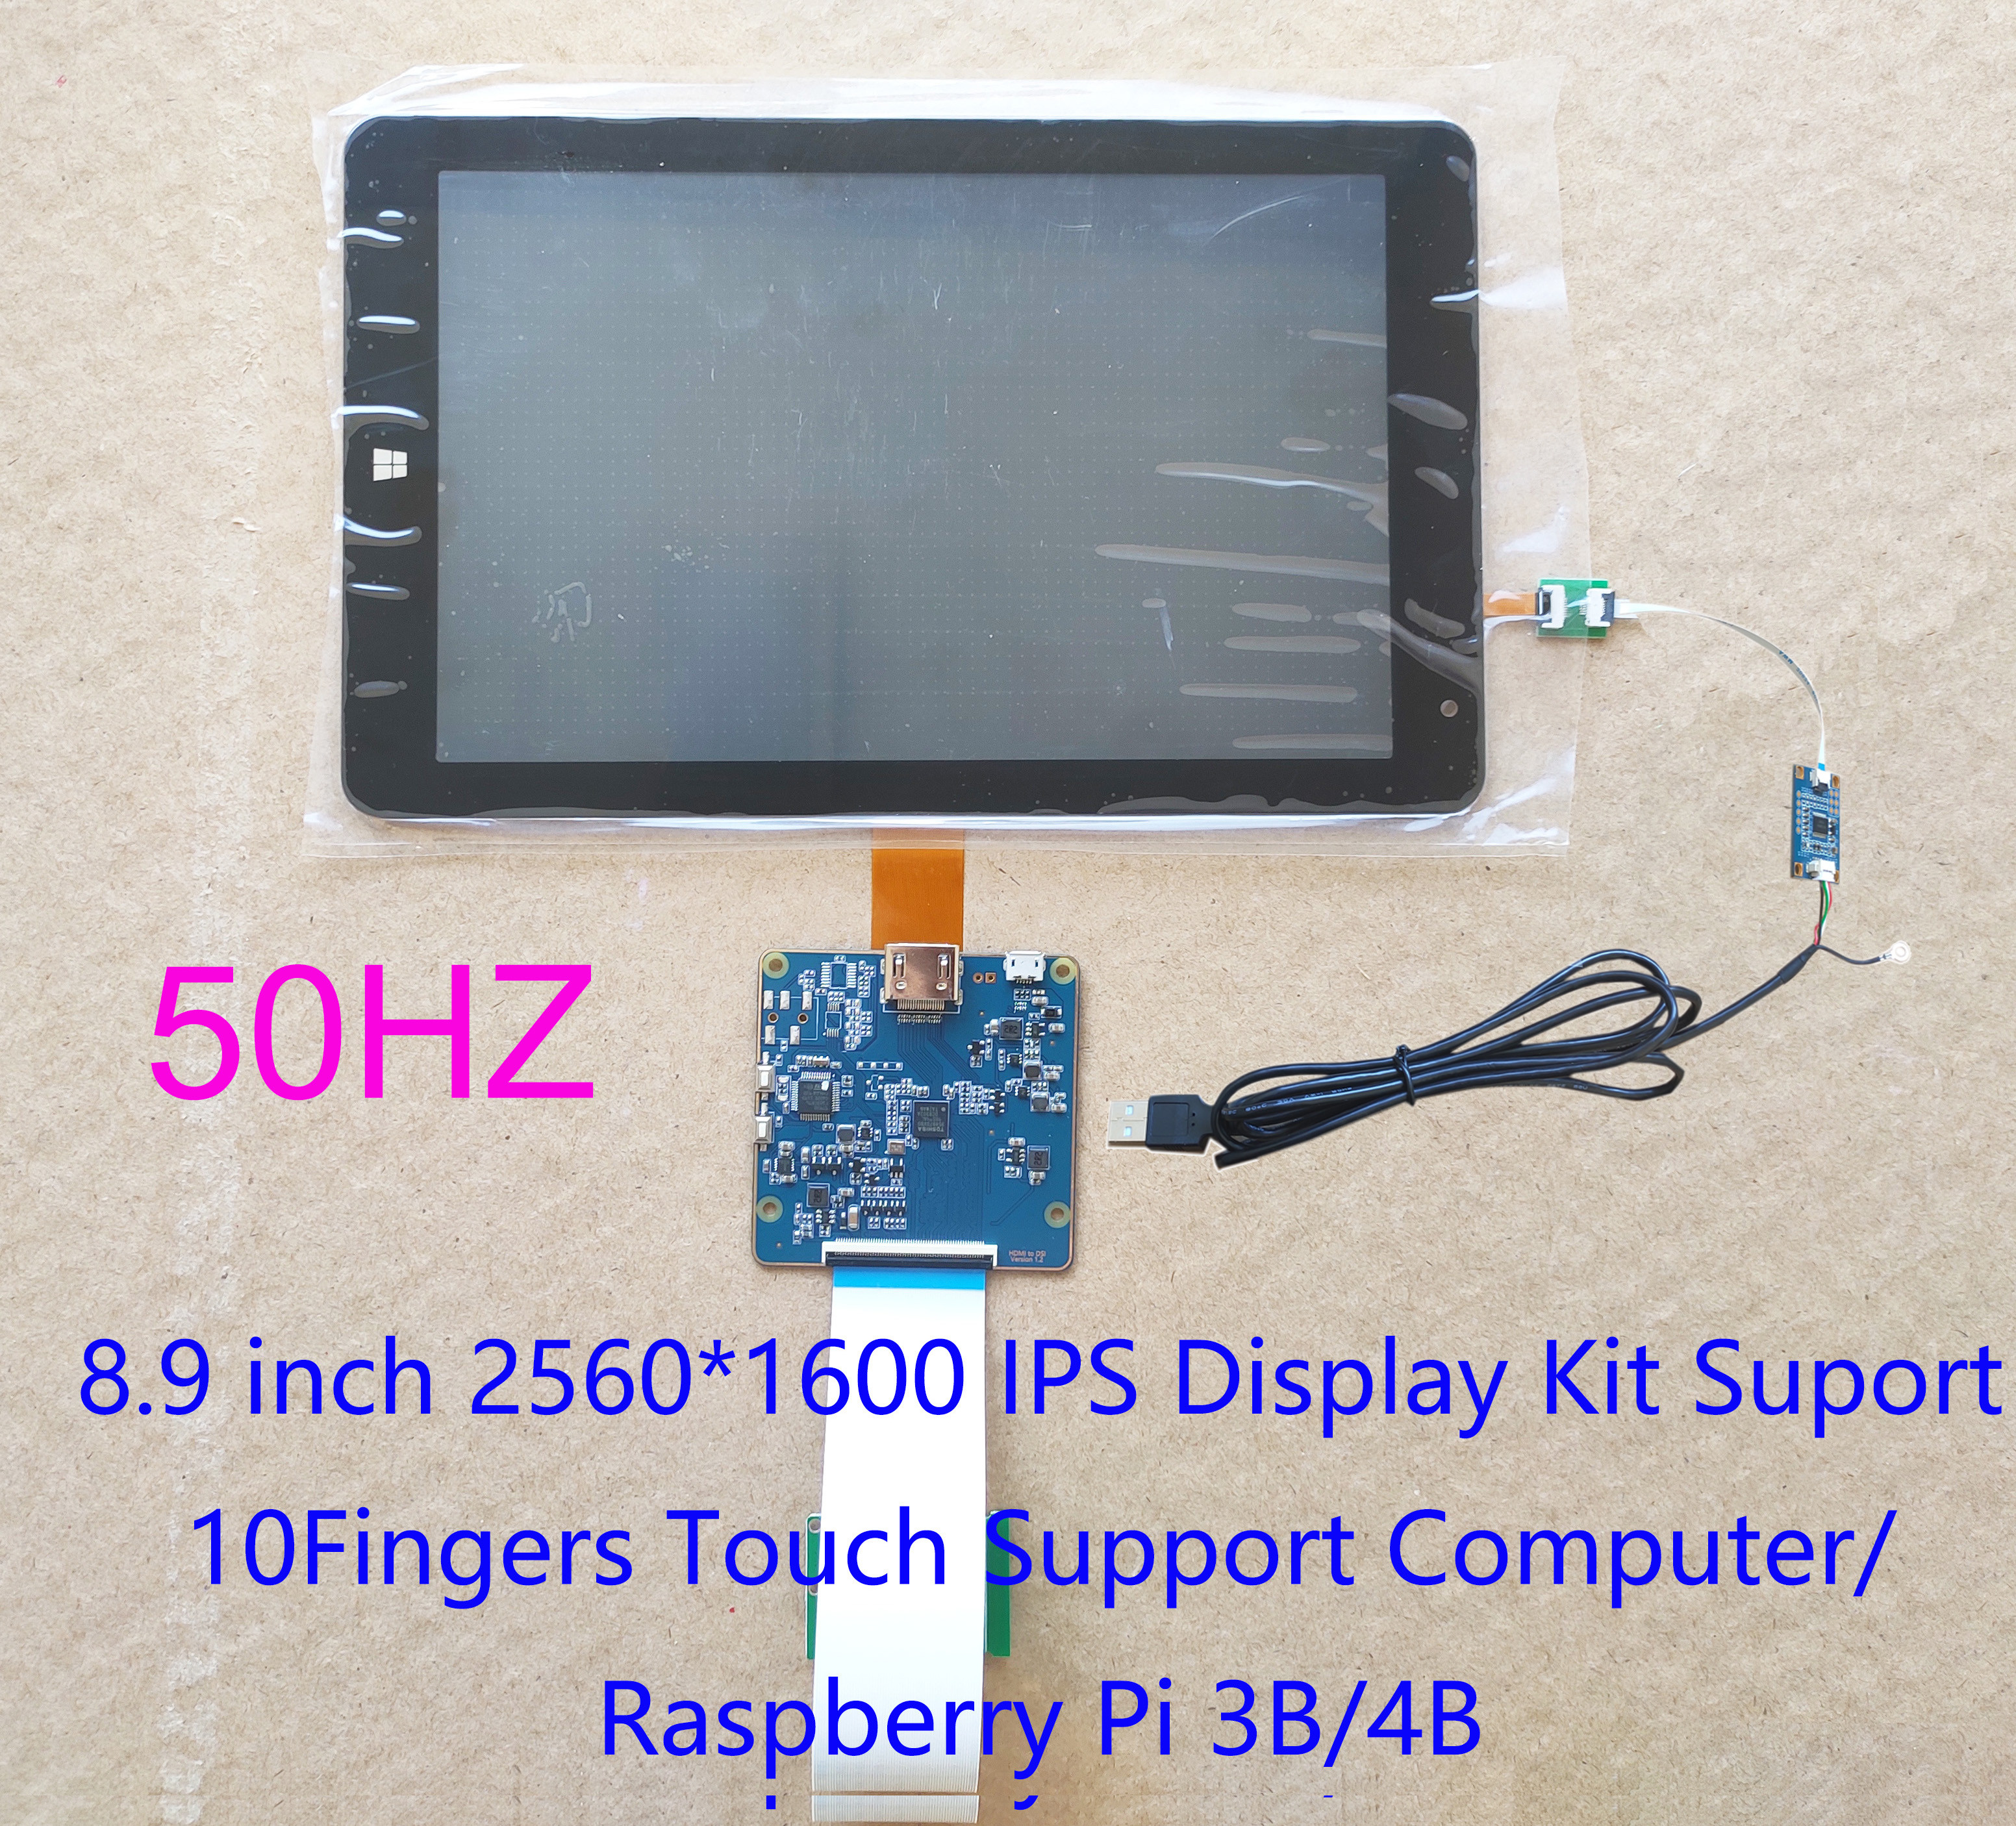 8.9 Inch TFTMD089030 2560*1600 2K HD Display Kit MIPI To HDMI Supports Raspberry Pi 3/4 USB Capacitive Touch Screen Digitizer